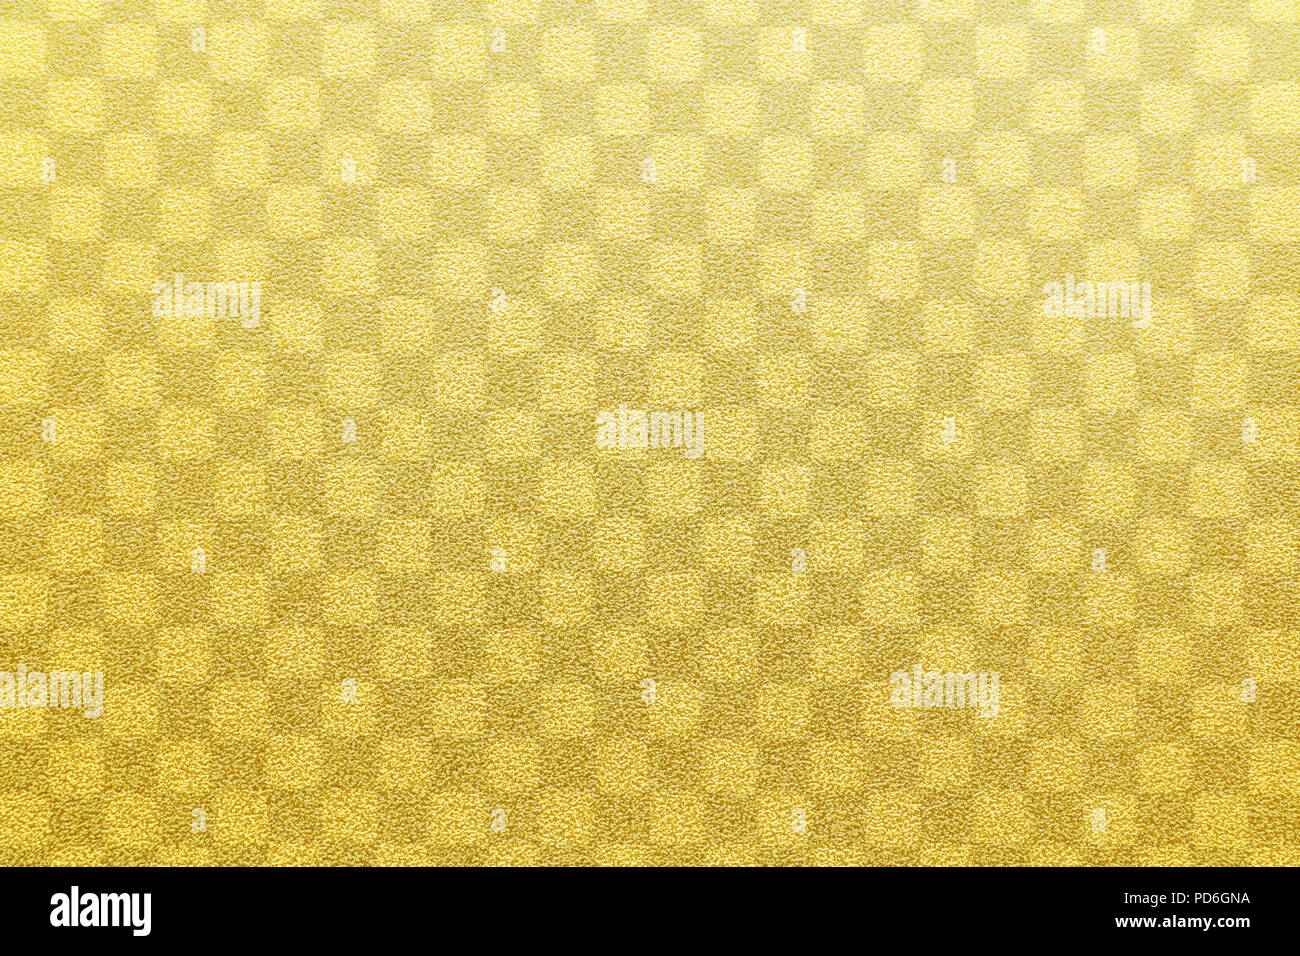 Japanese gold checkered pattern paper texture or vintage background Stock Photo